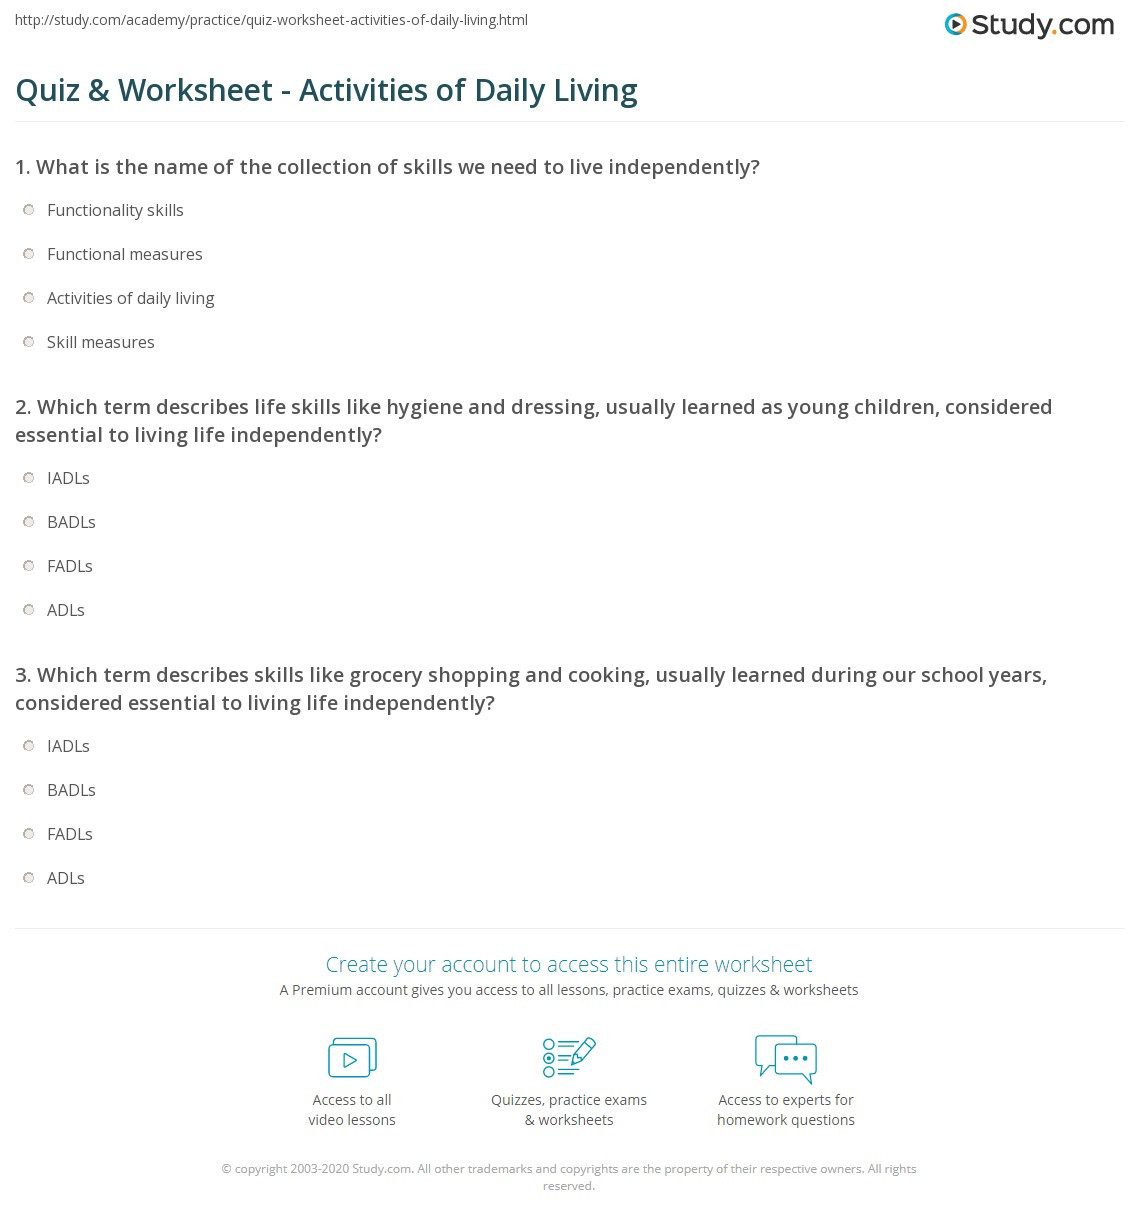 Daily Living Skills Worksheet Quiz & Worksheet Activities Of Daily Living